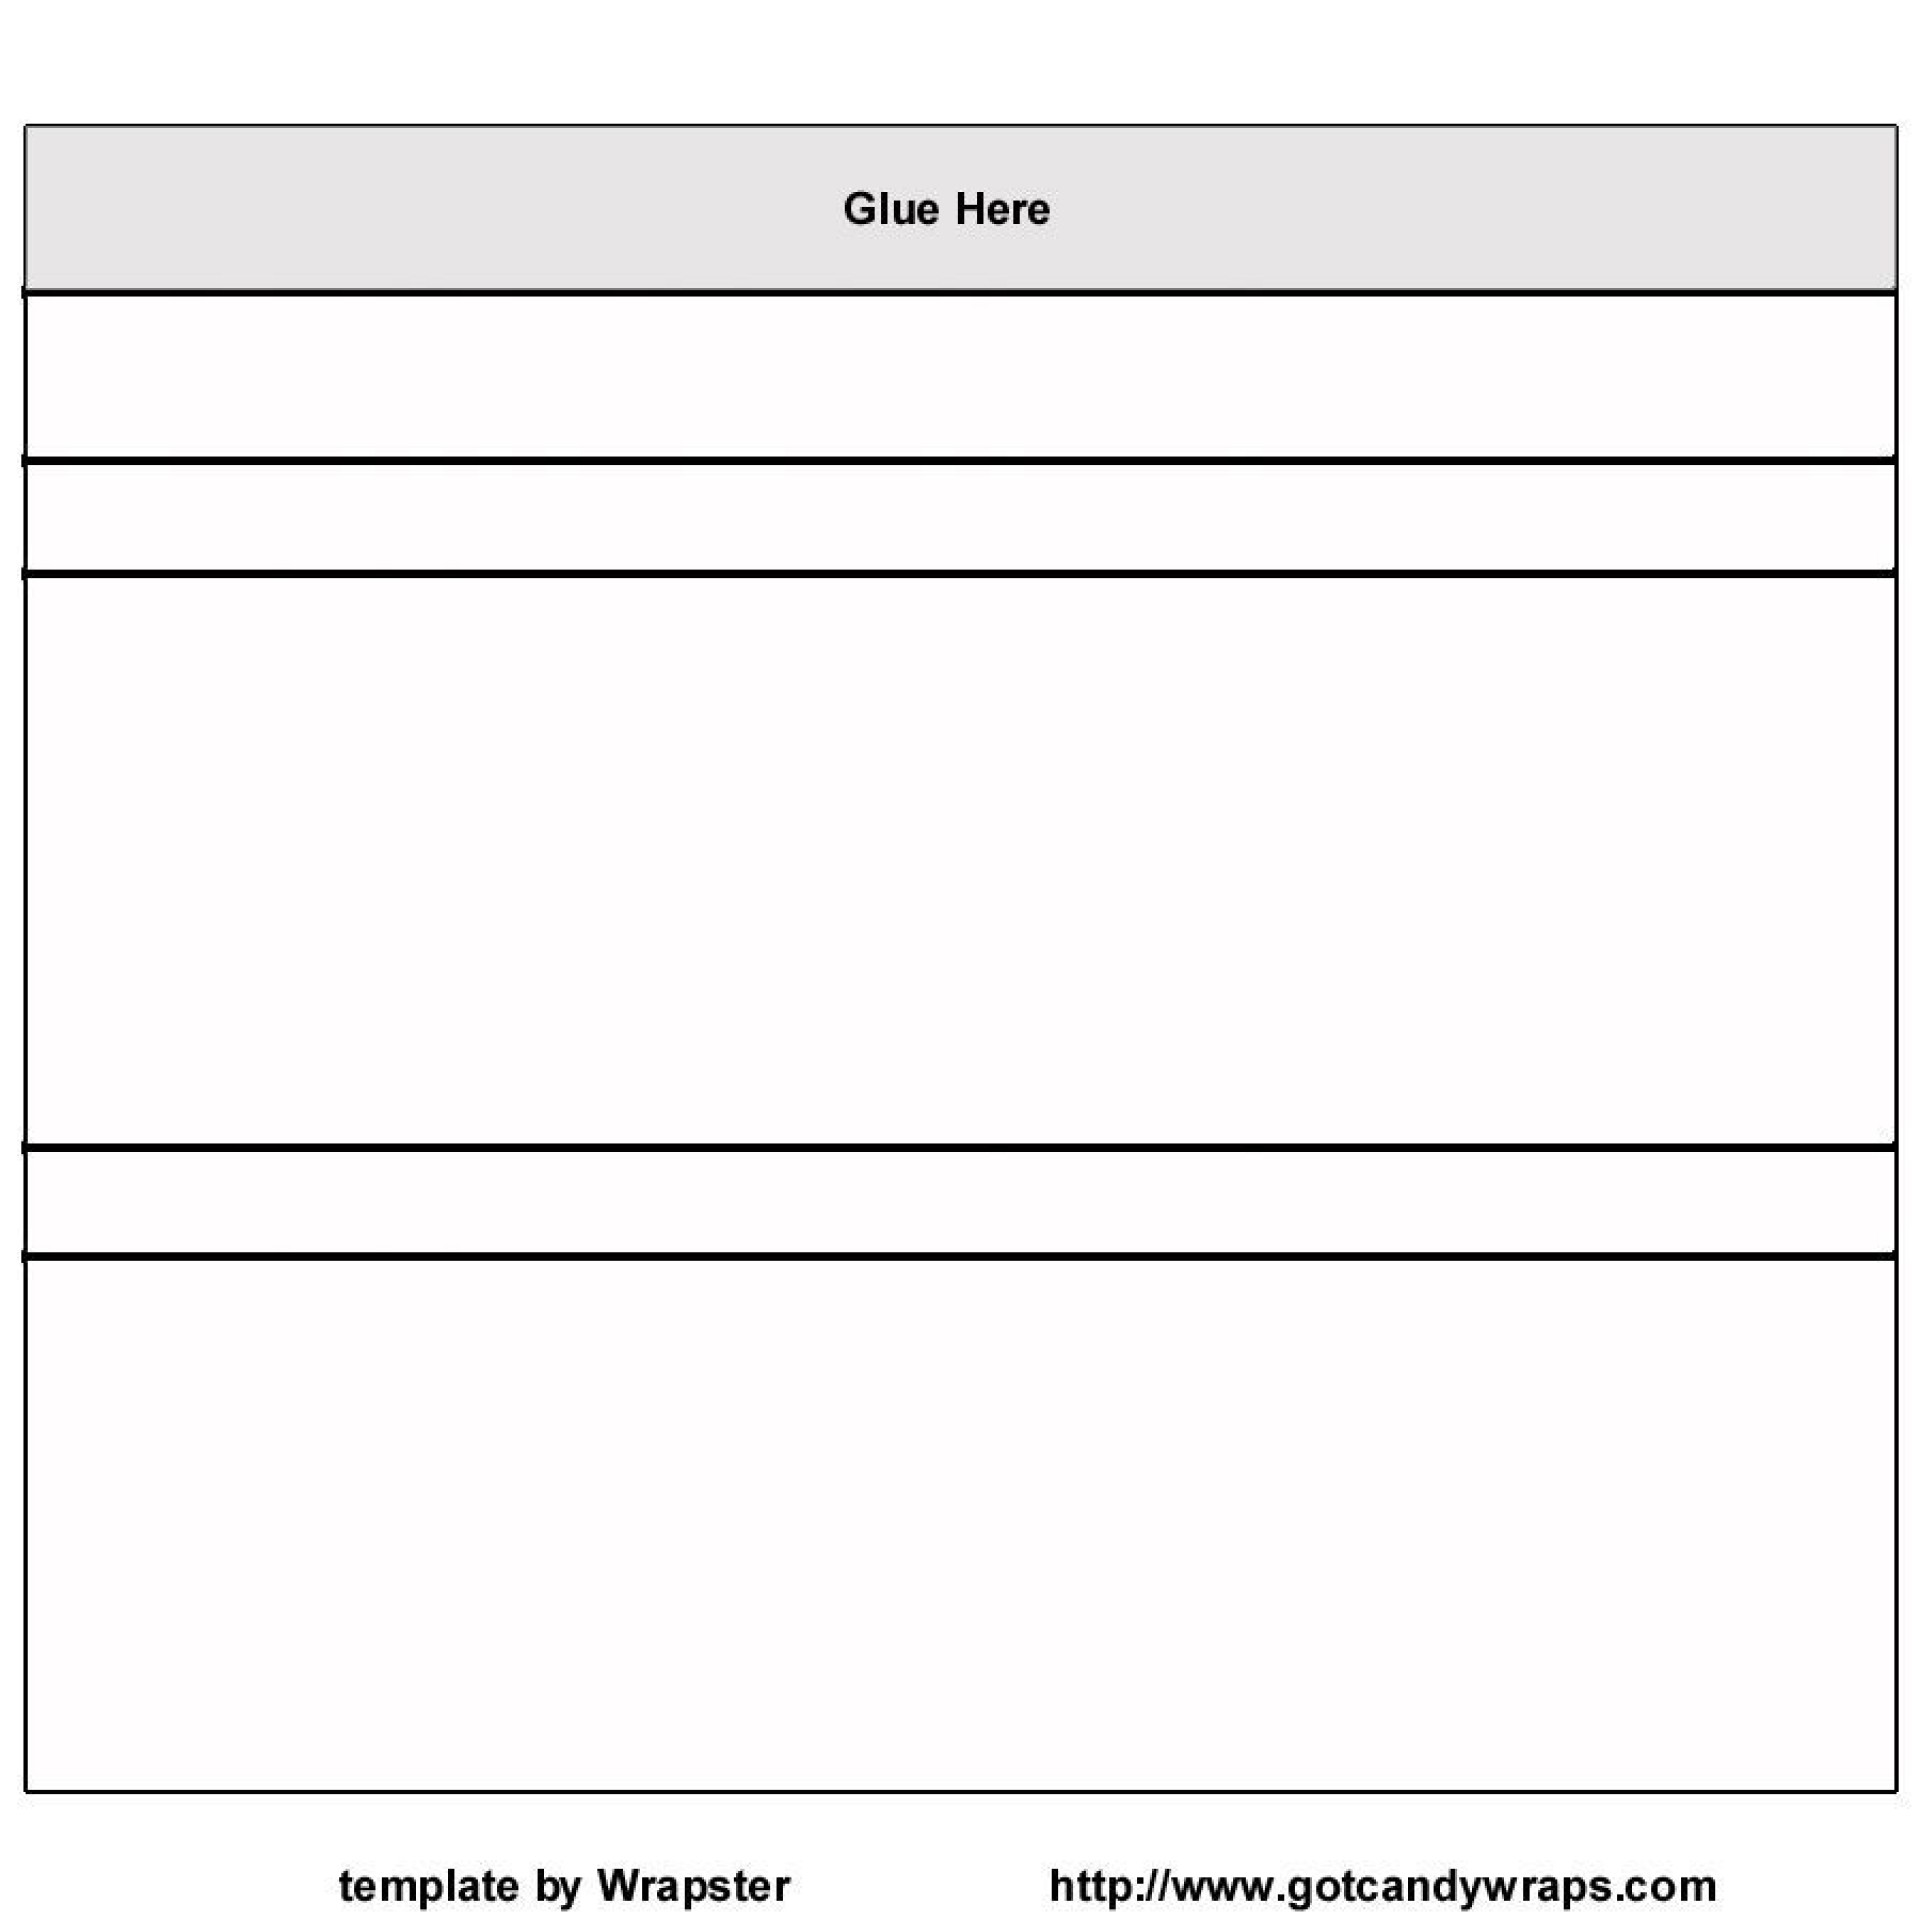 001 Simple Candy Bar Wrapper Template For Word Free Concept  Printable Microsoft1920